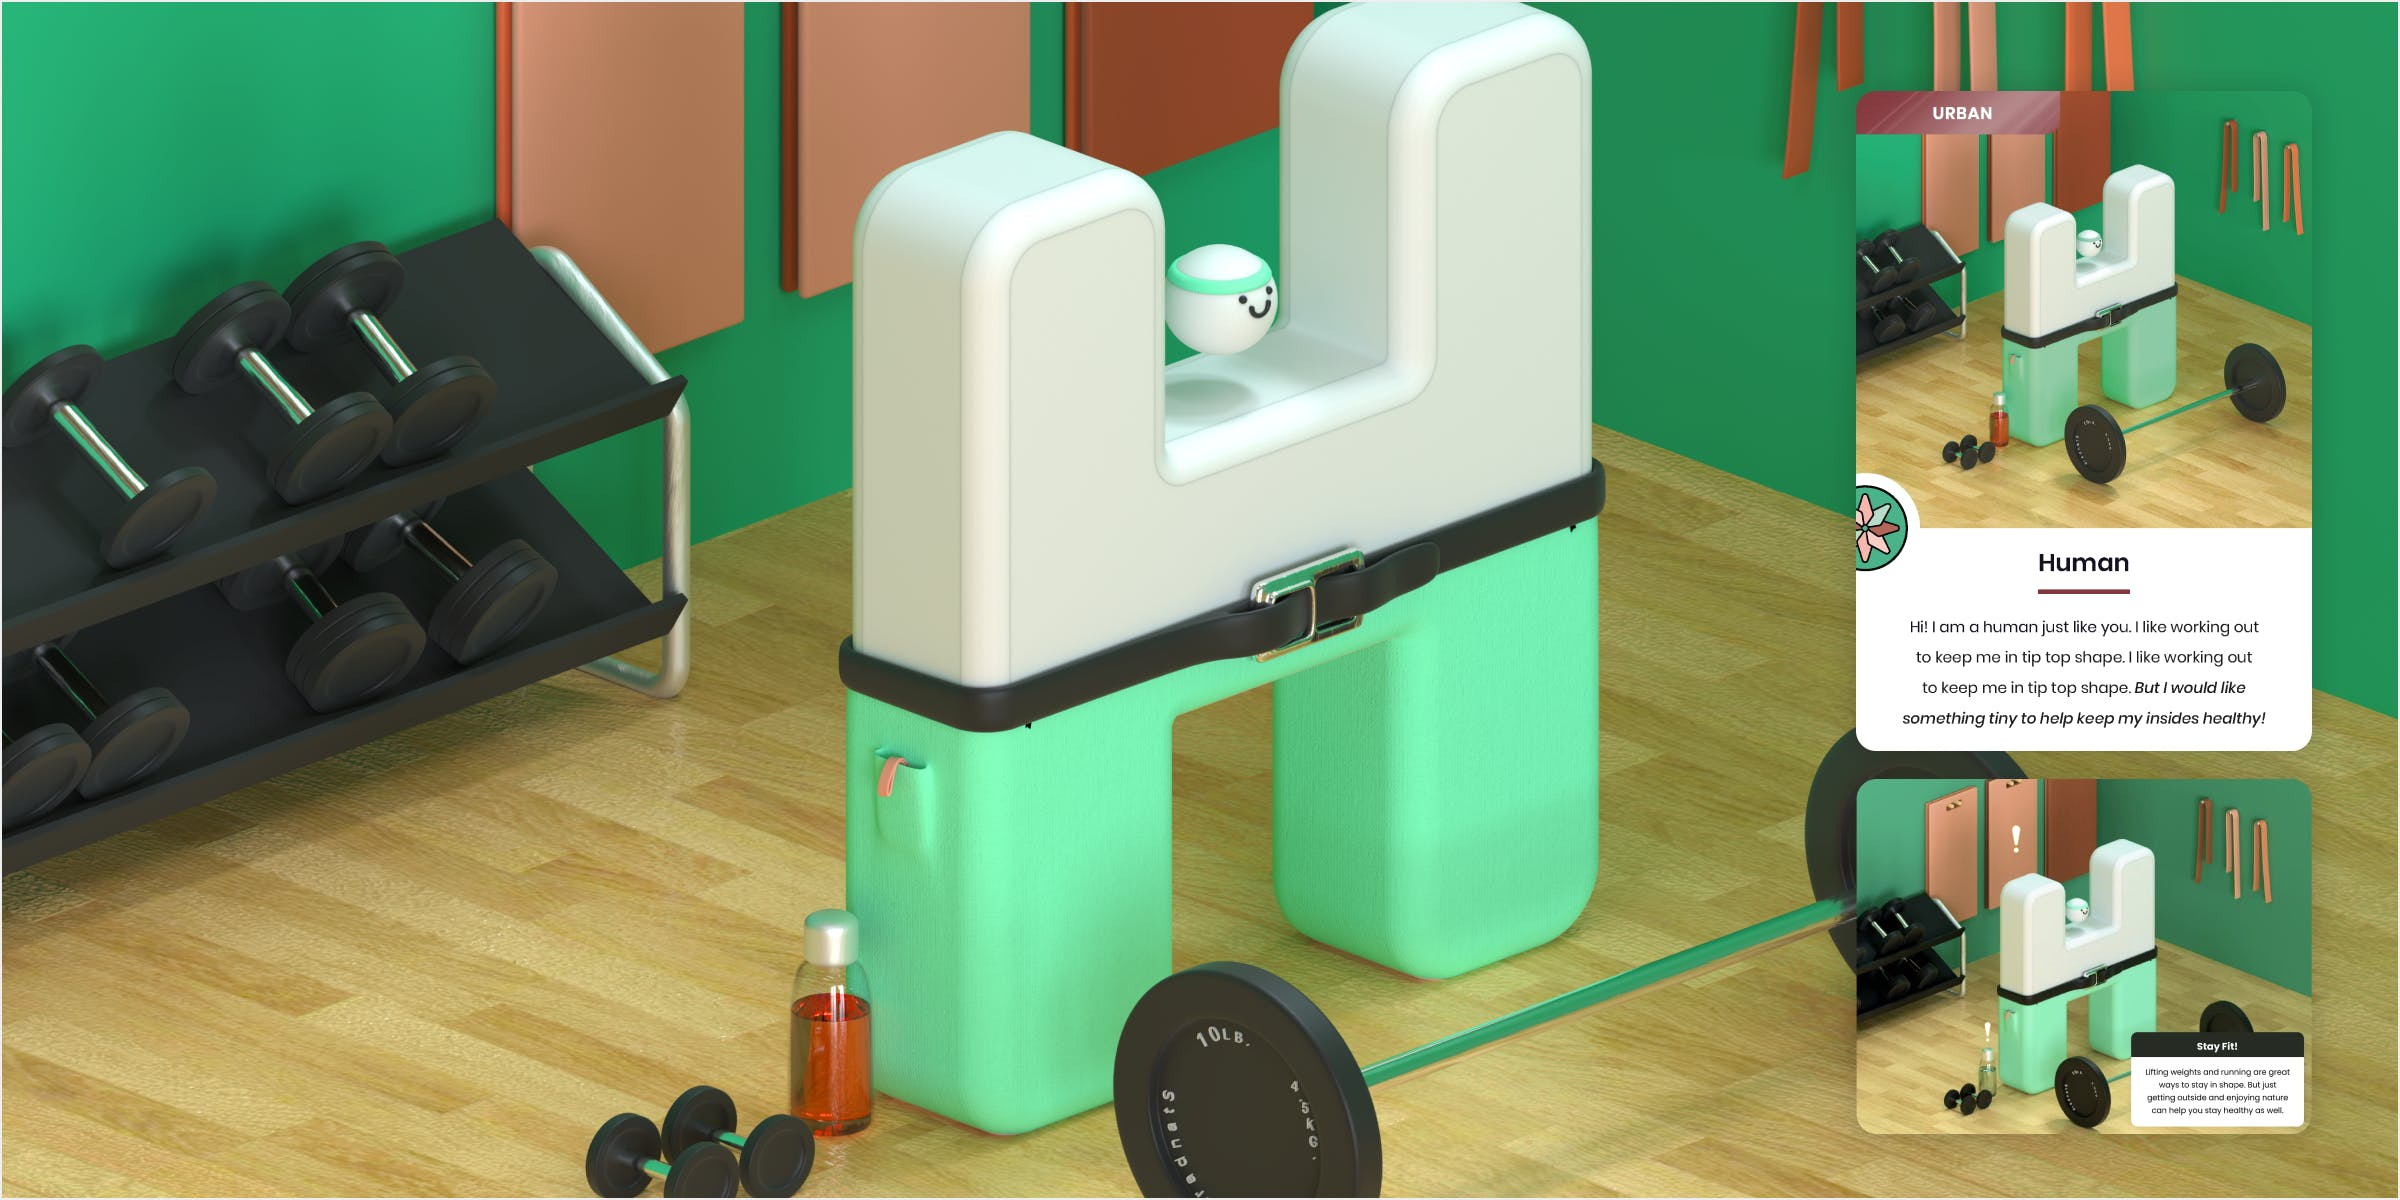 A close up of the illustration of the 3D modeled human in a gym environment with an example of the iPad interaction and print playing card.